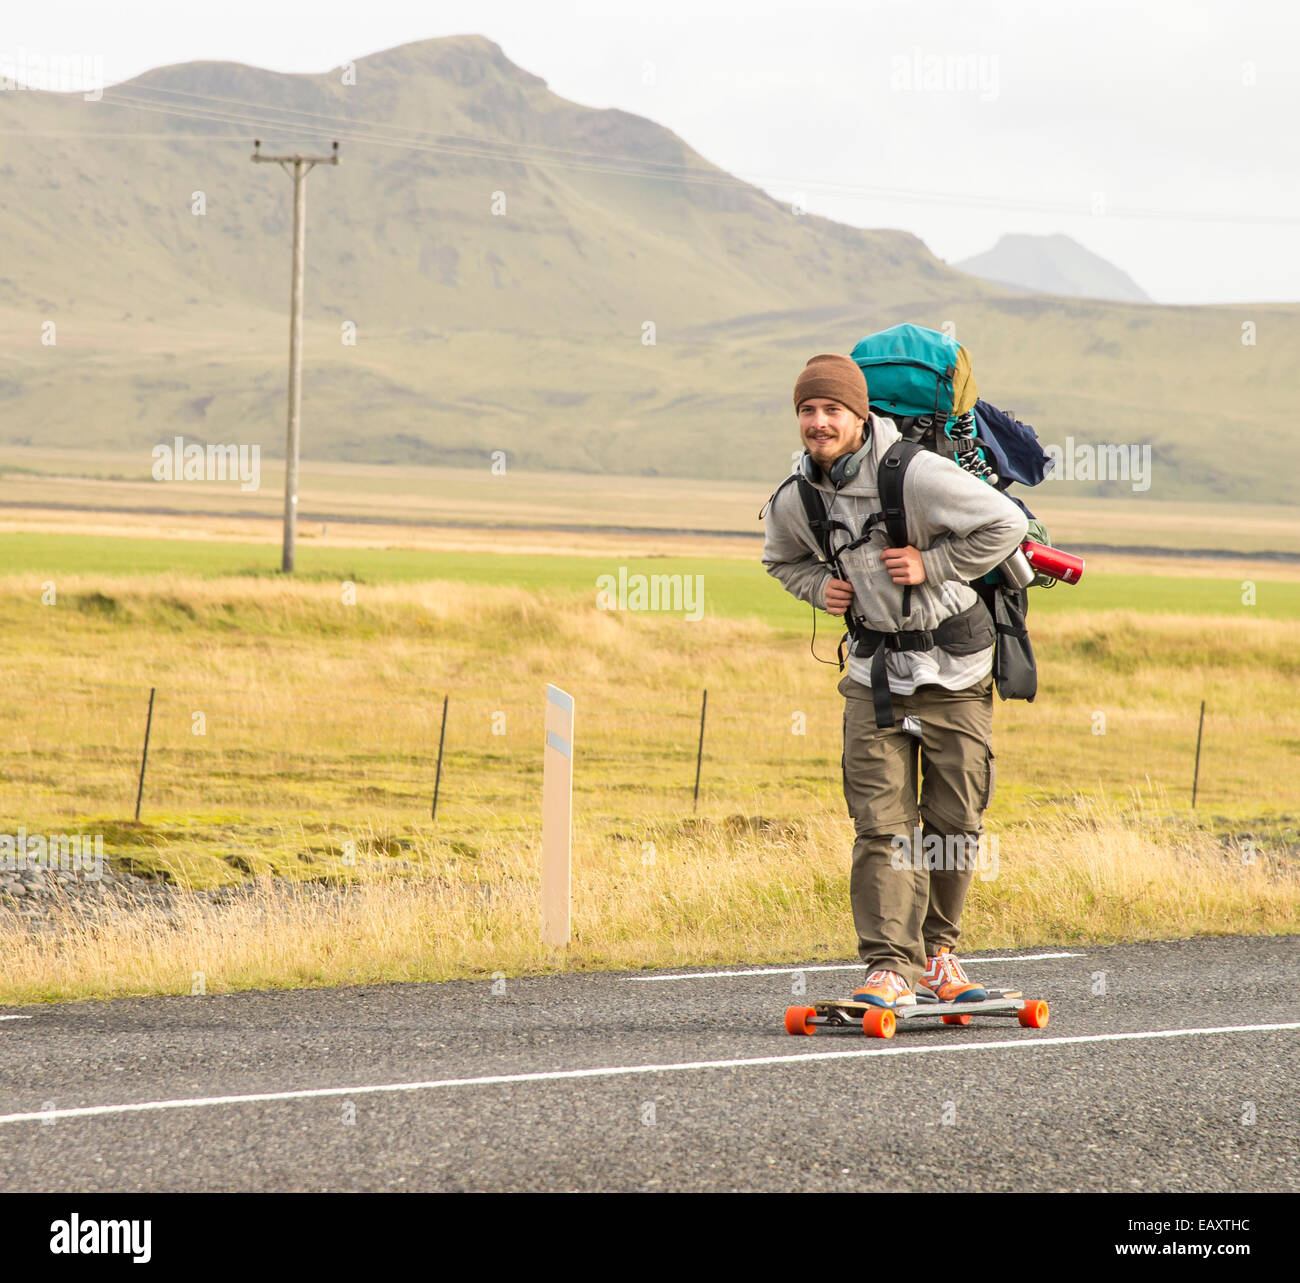 SkateBoarder on a long board with backpack on the Ring Road, Highway 1, Iceland - Stock Image